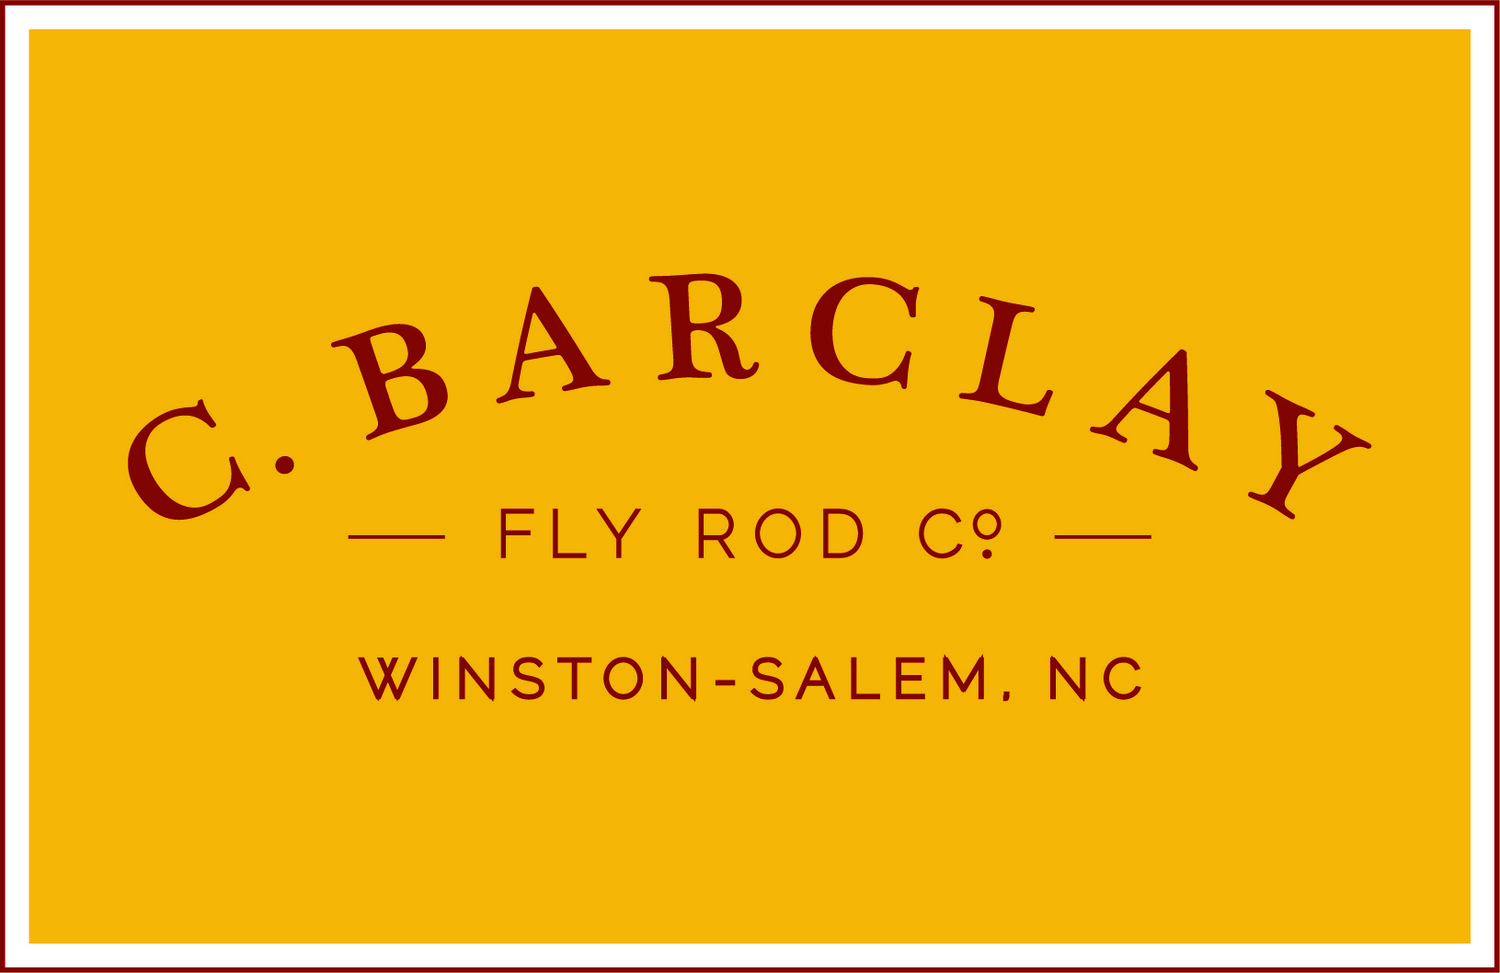 C. Barclay Fly Rod Co.